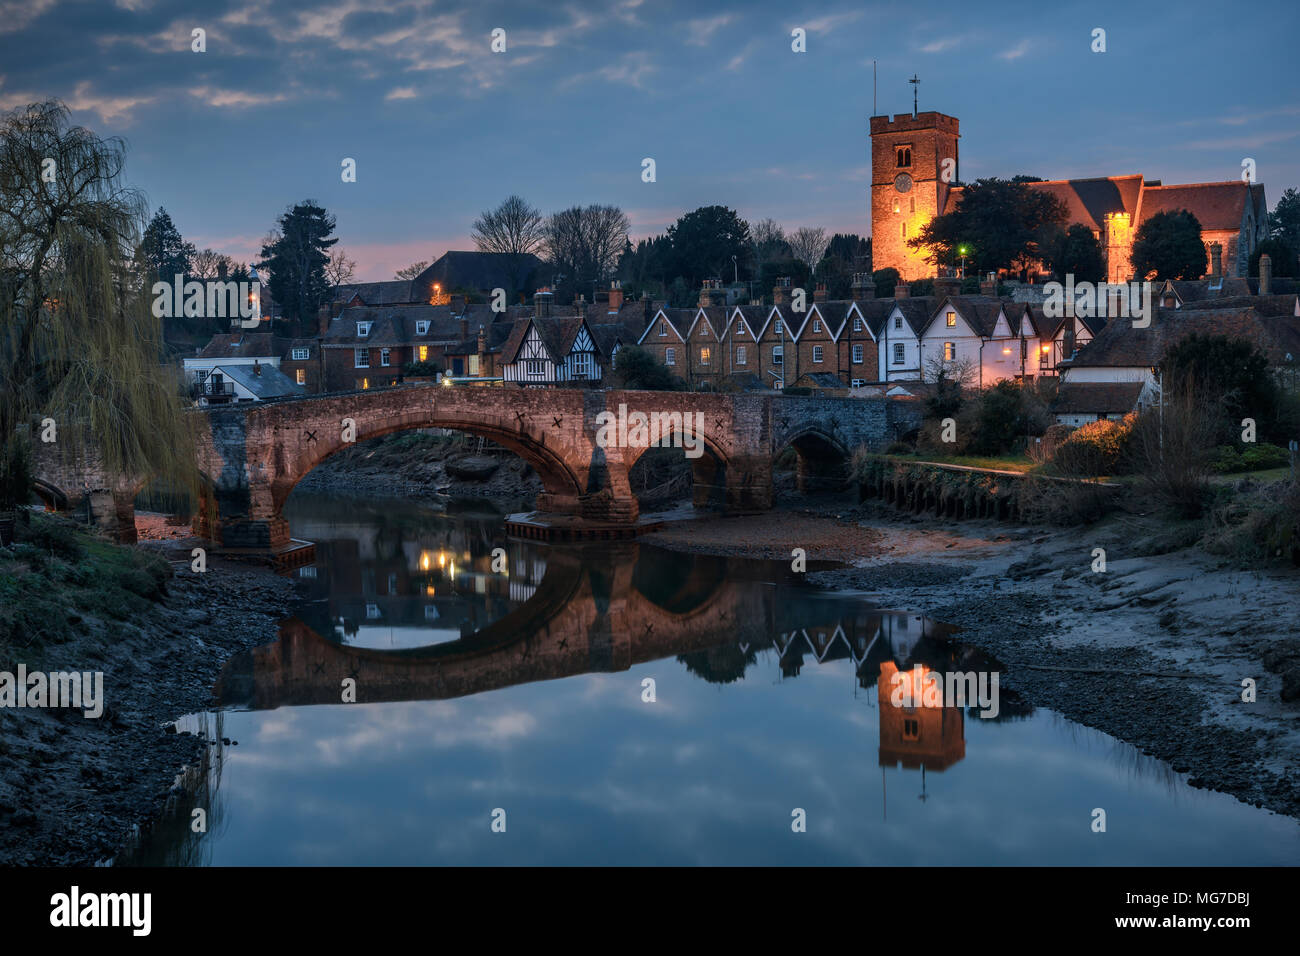 Night view to Aylesford village in Kent, England with medieval bridge and church. - Stock Image